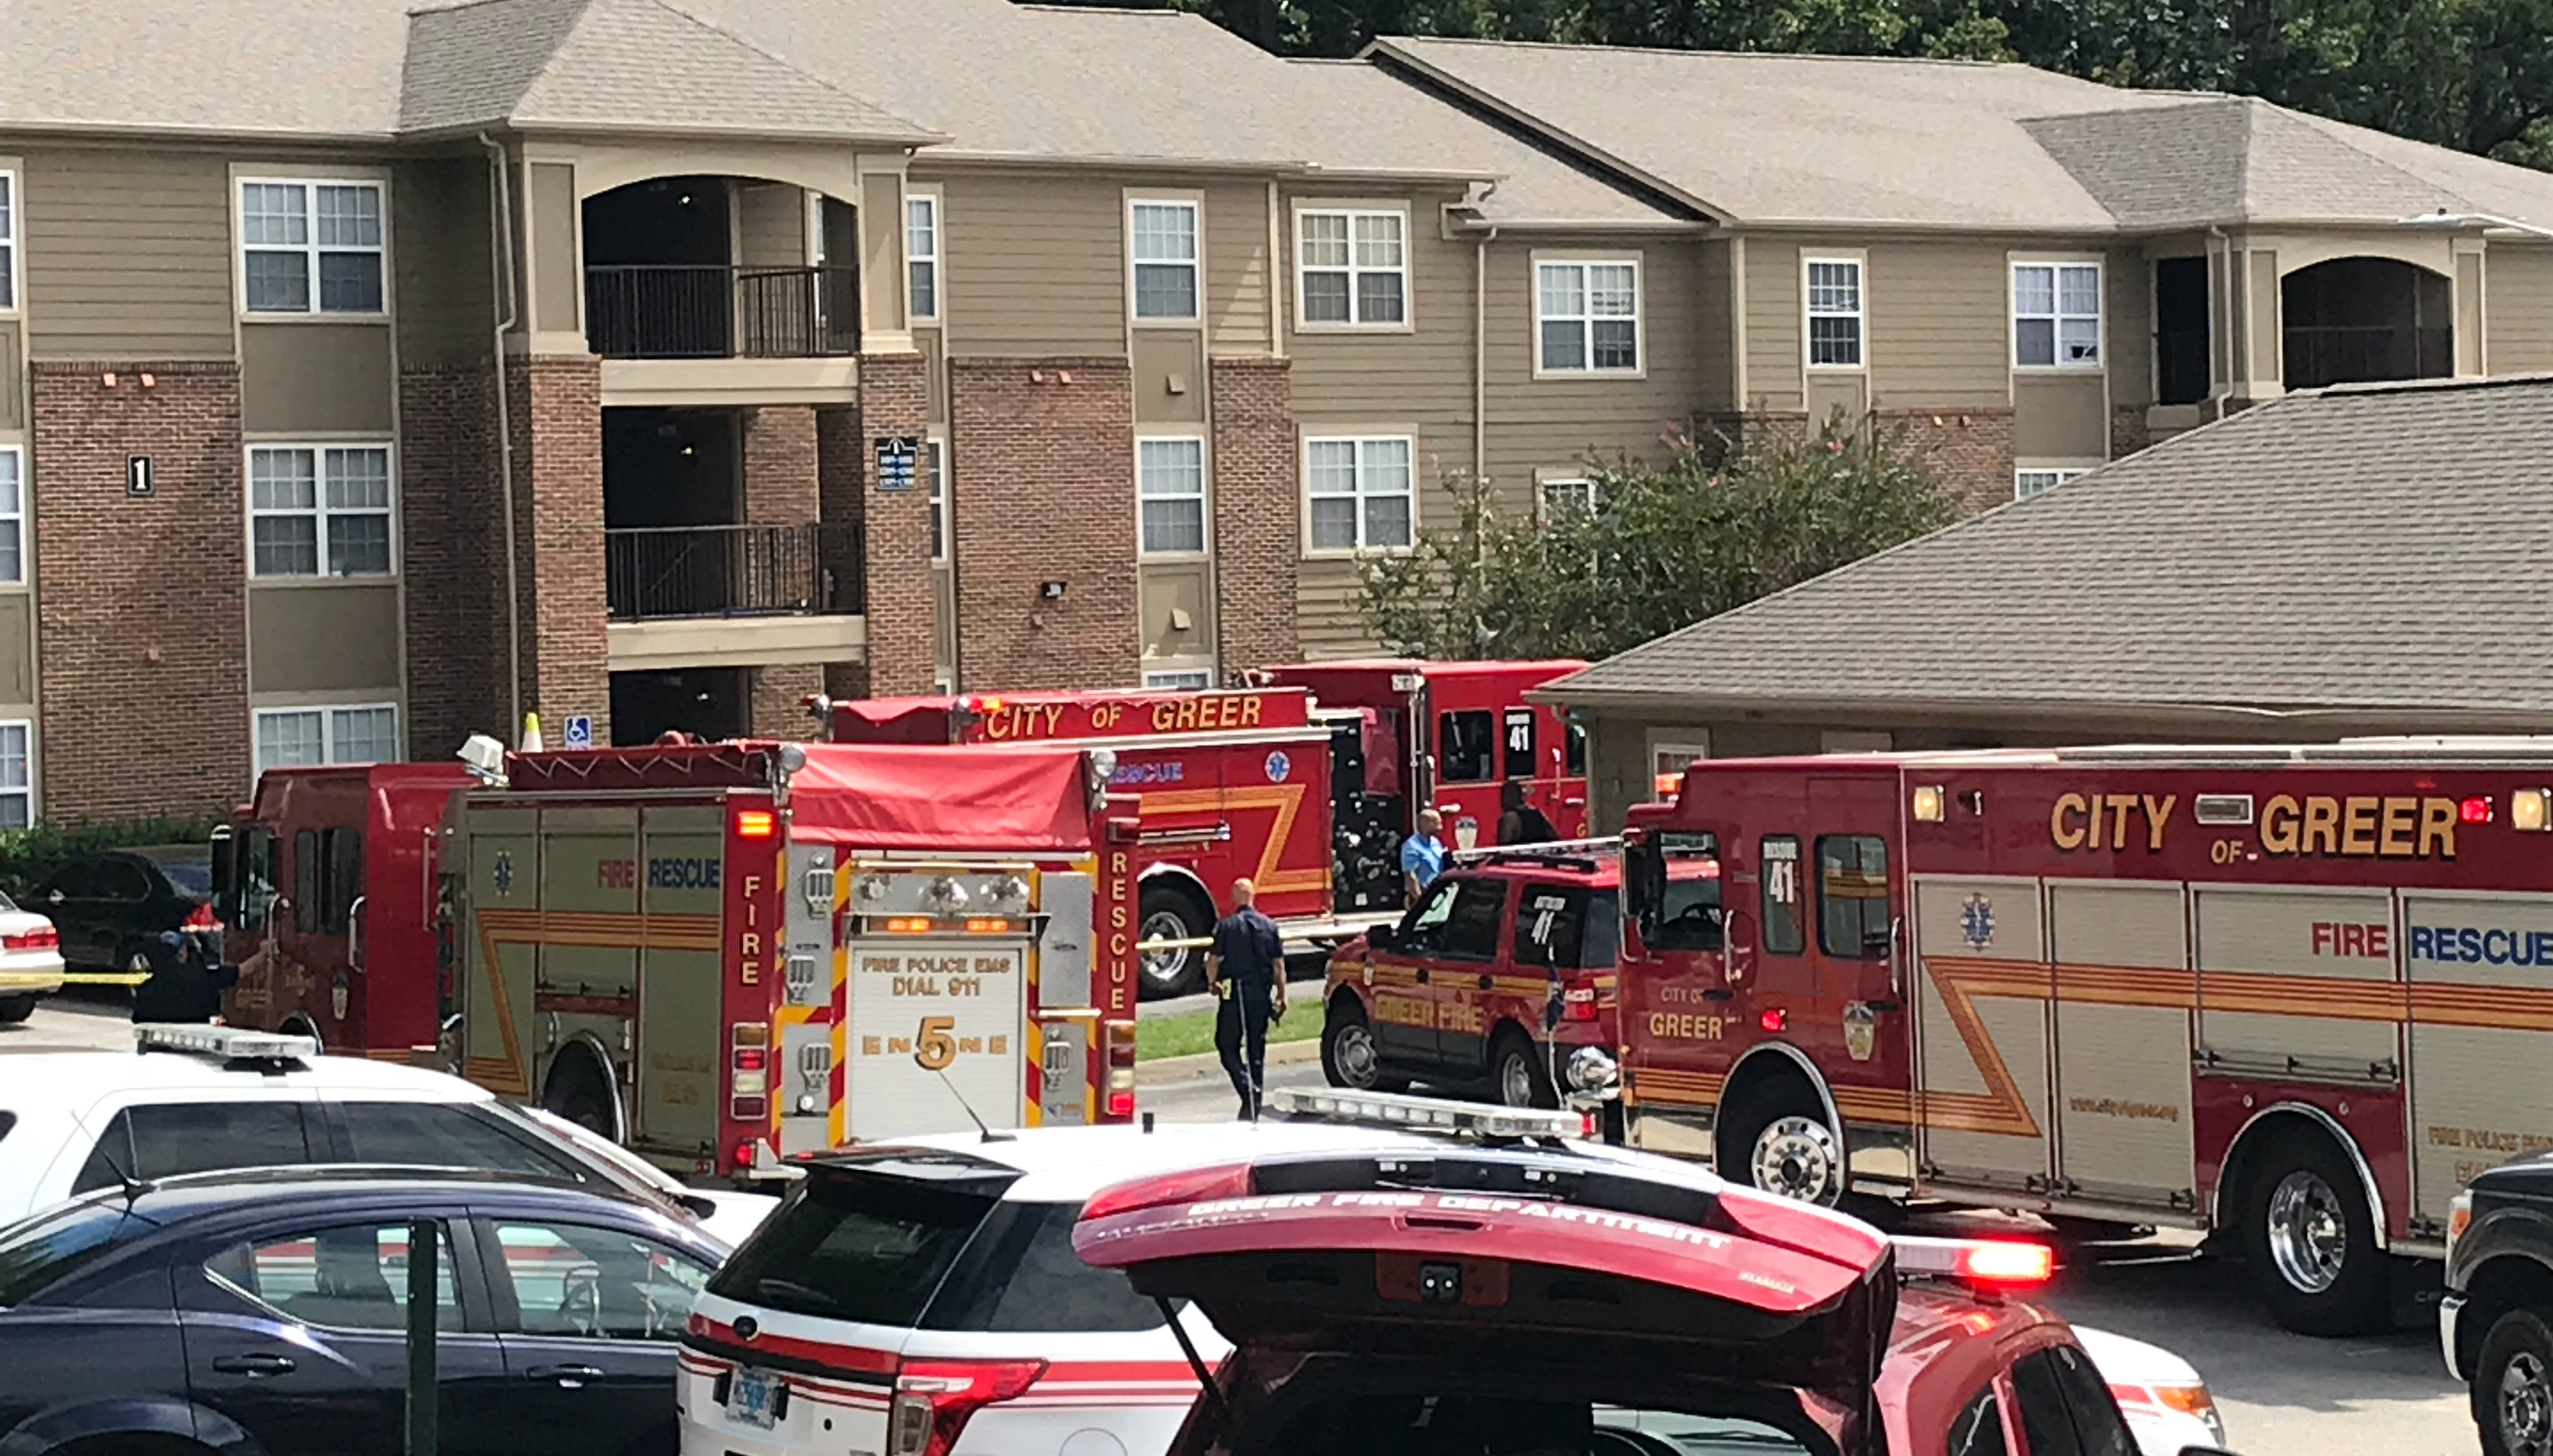 Double homicide in Greer apartment tied to Wellford suicide, authorities say